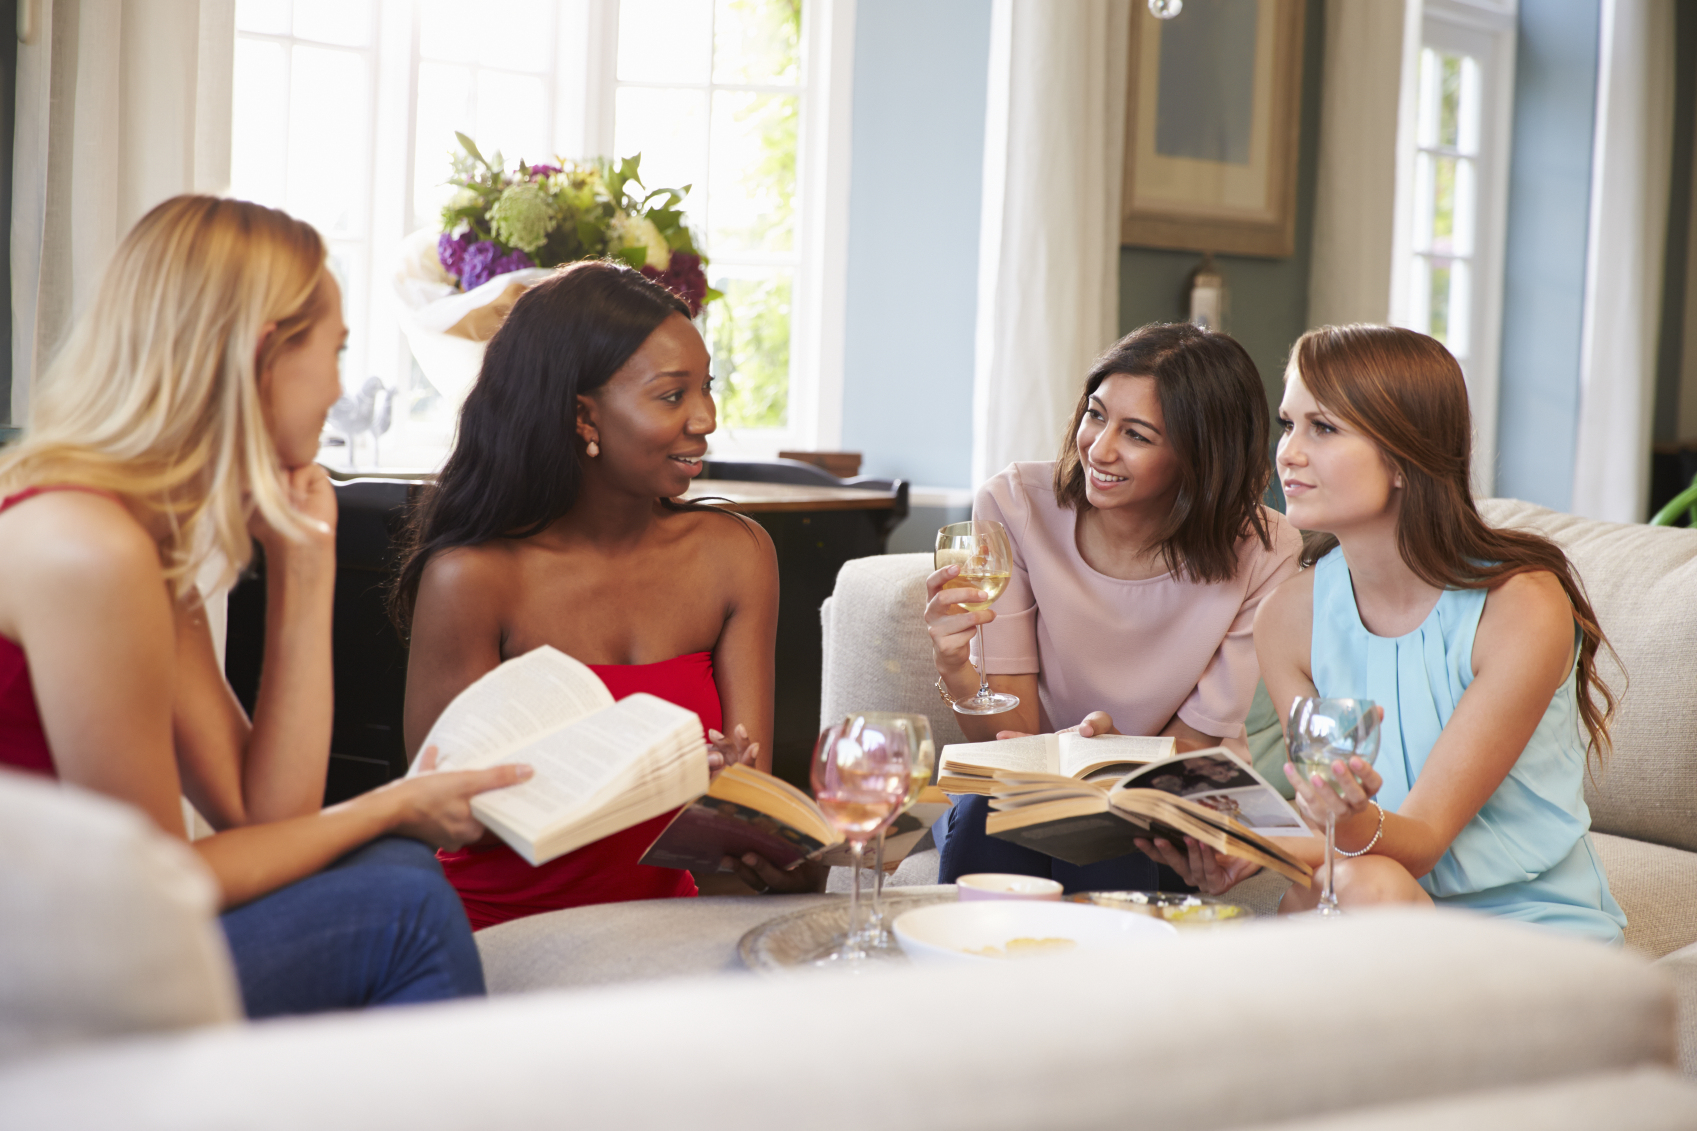 Getting together with women to share and connect can sometimes be easier and more fun with a book as our excuse!